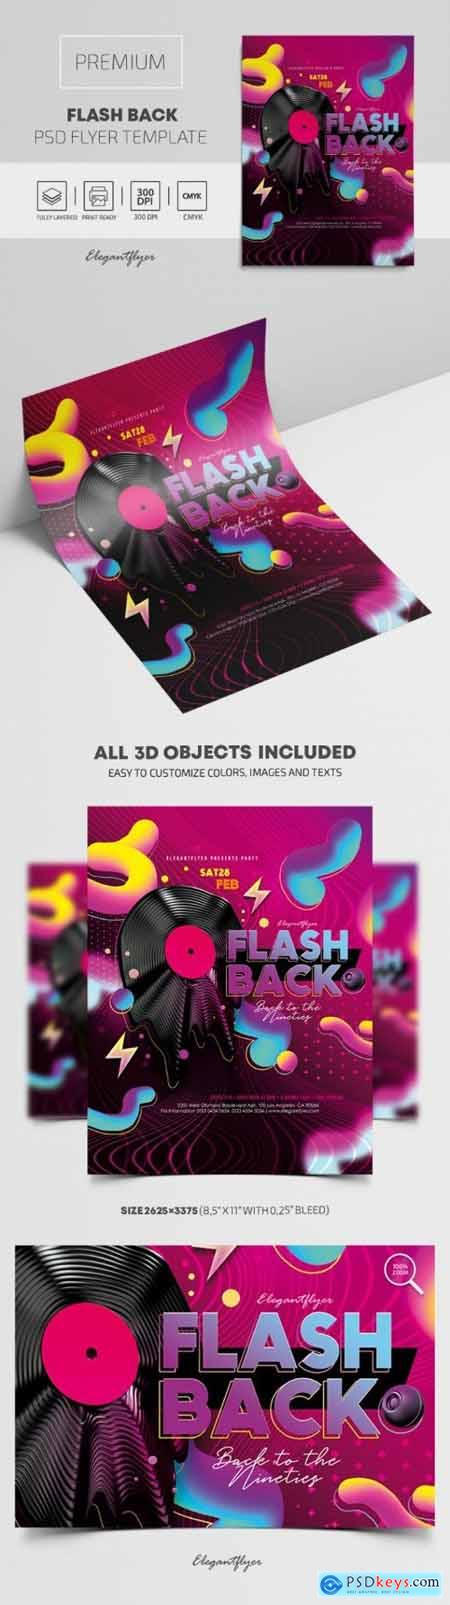 Flash Back – Premium PSD Flyer Template